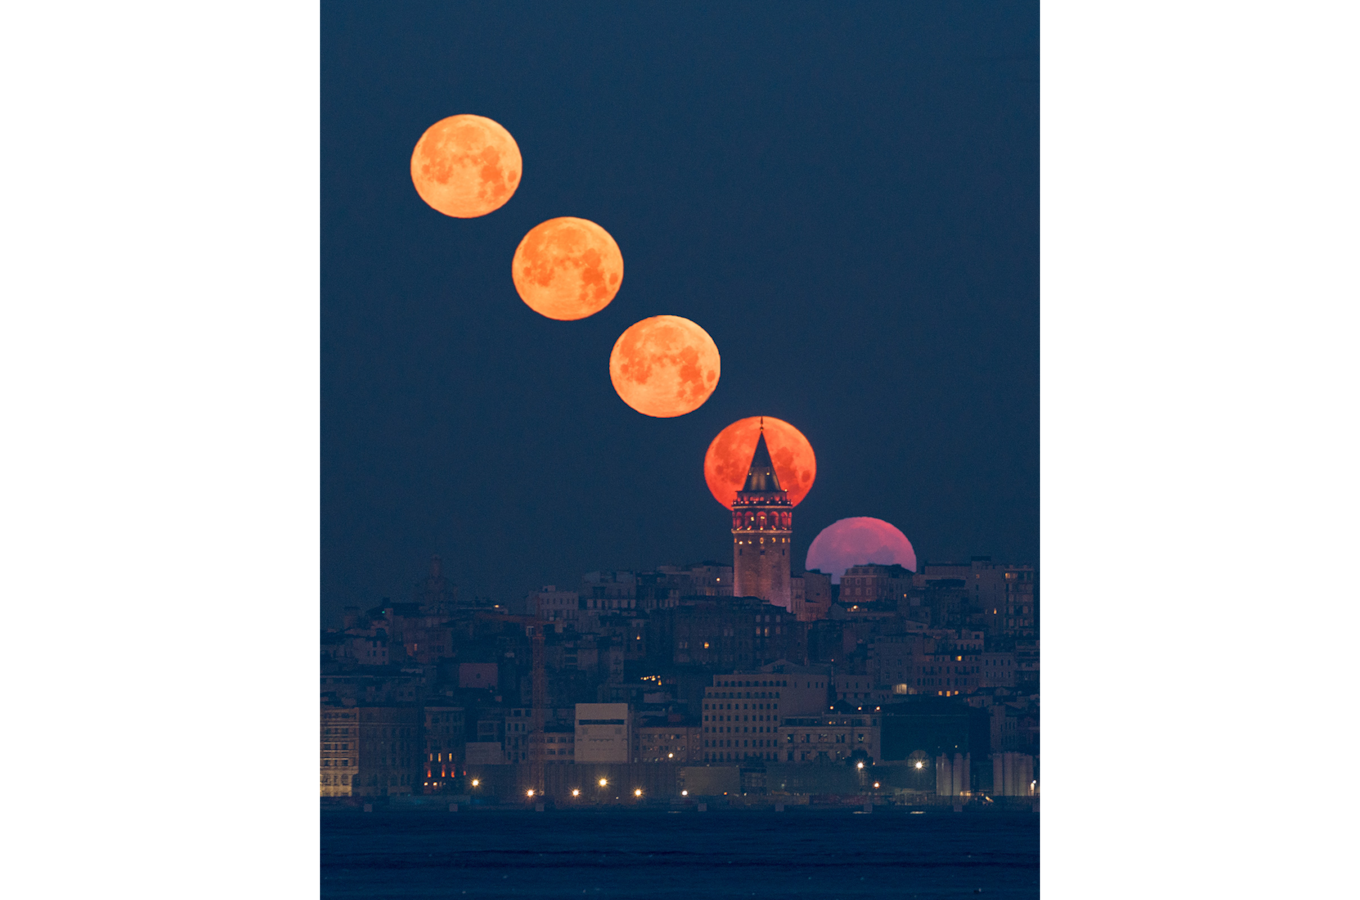 ilkin-karacan-sony-alpha-7RIII-lunar-eclipse-multiple-exposure-over-cityscape